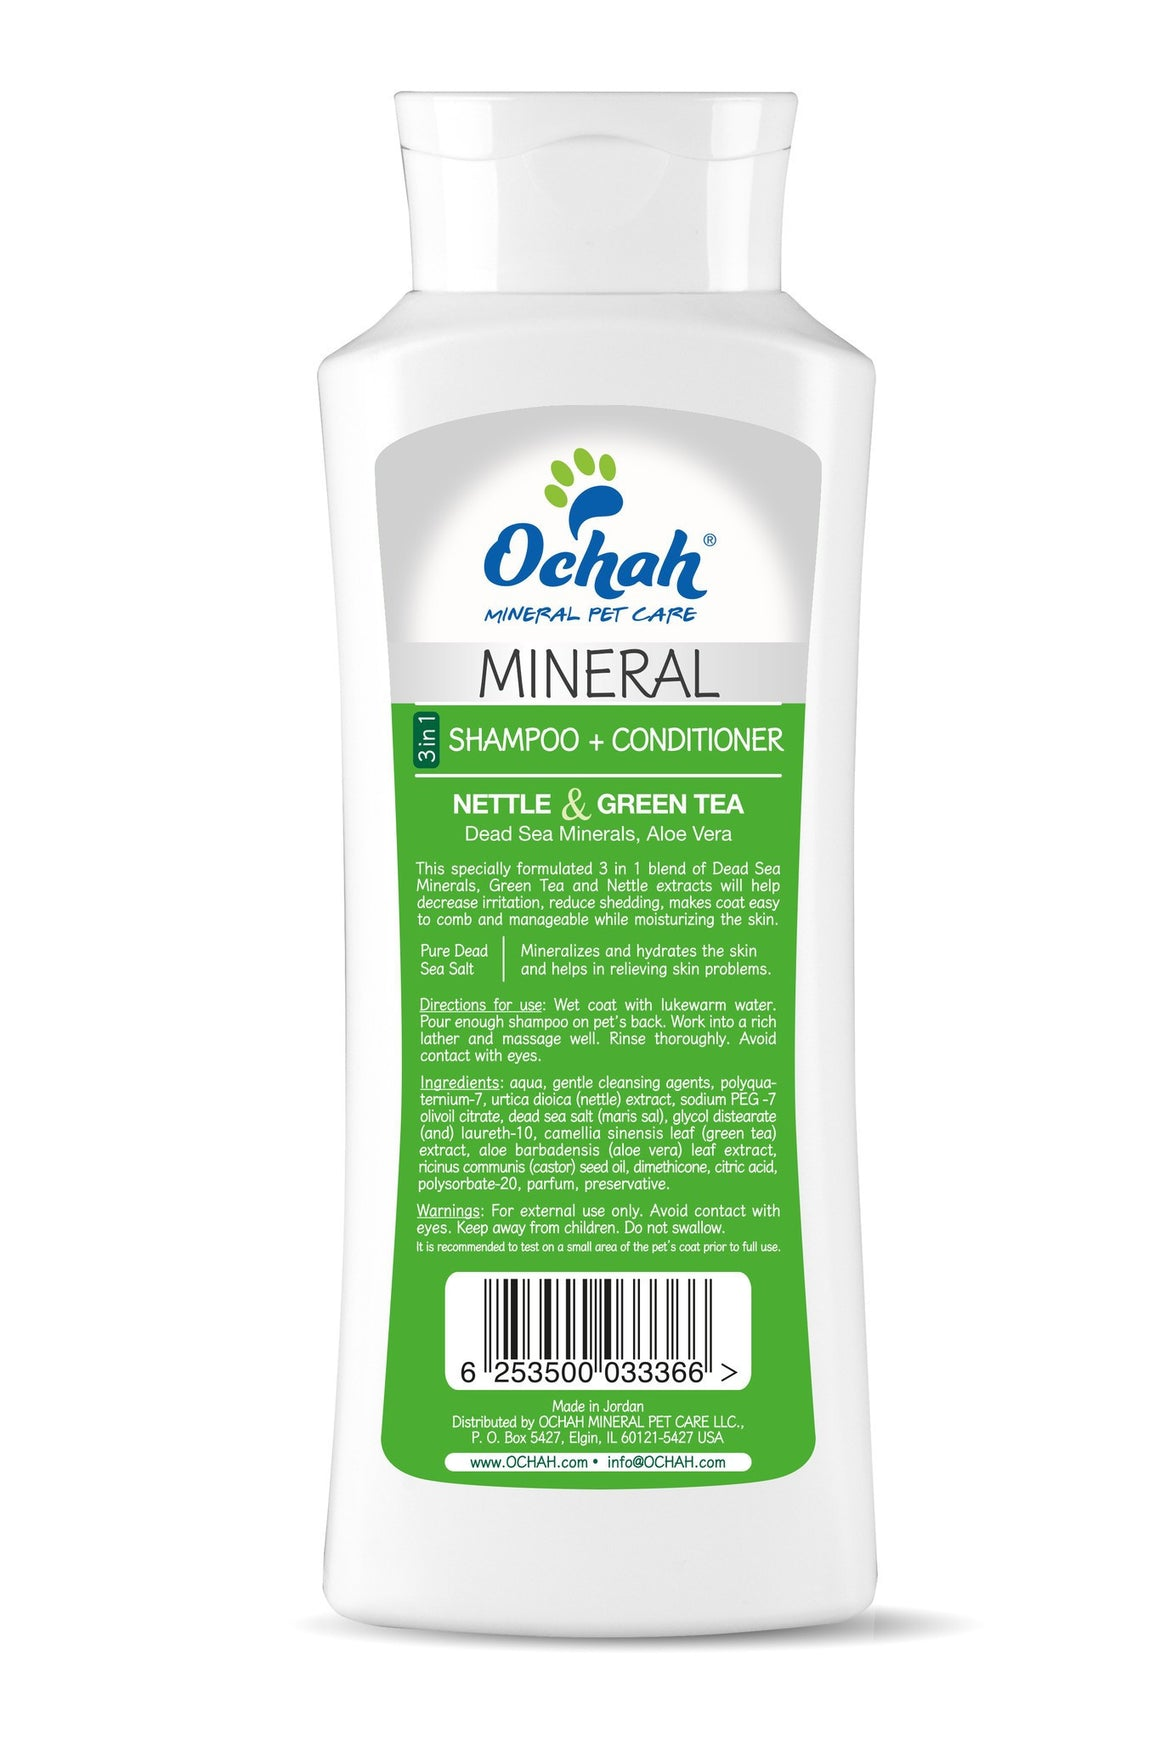 [Safest Mineral Pet Products For Skin Treatment] - Ochah Mineral Pet Care